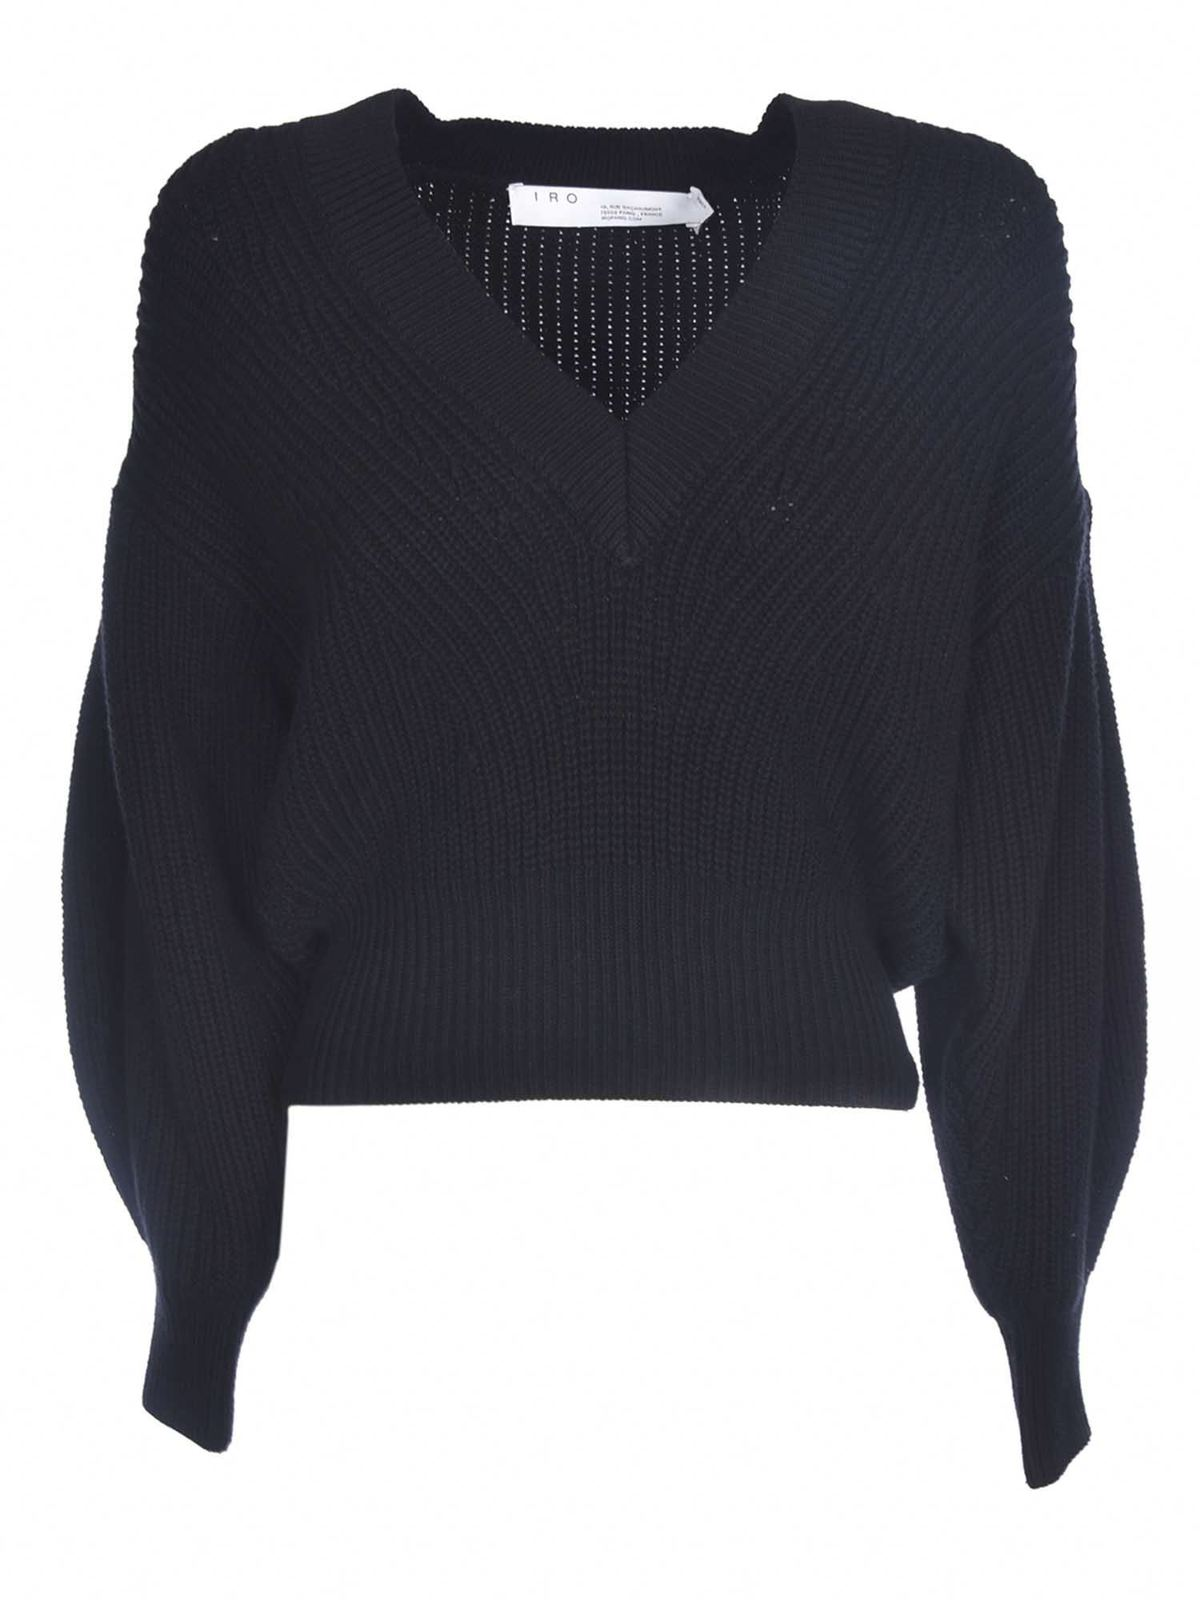 Iro KIRIA SWEATER IN BLACK